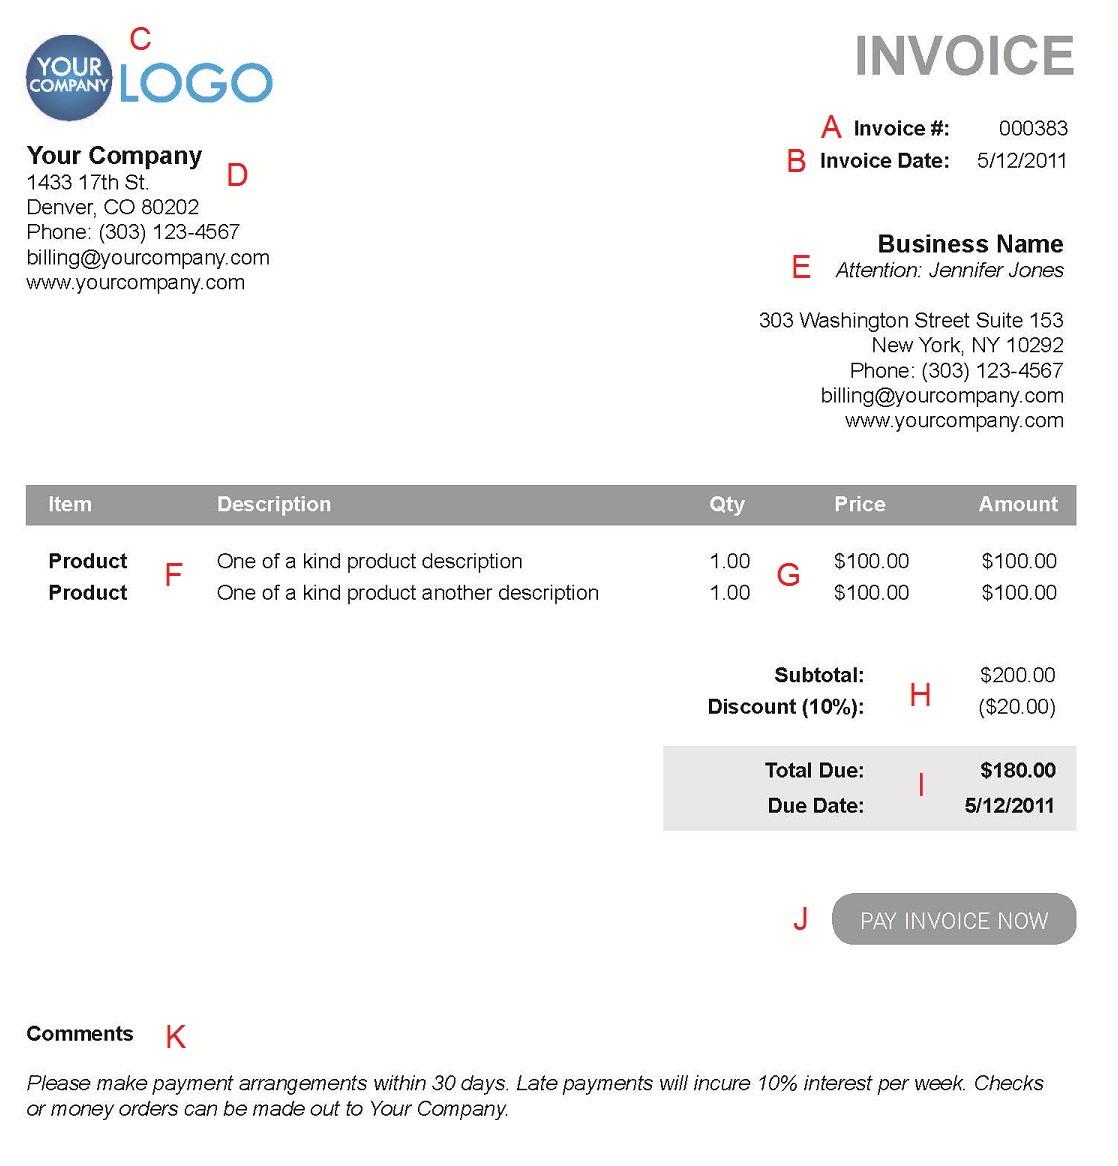 Offtheshelfus  Surprising The  Different Sections Of An Electronic Payment Invoice With Marvelous A  With Appealing How To Do An Invoice In Excel Also Shipping Invoice Format In Addition Tax Invoice Statement And Printer Invoice As Well As Toyota Corolla Invoice Additionally Net  Days From Date Of Invoice From Paysimplecom With Offtheshelfus  Marvelous The  Different Sections Of An Electronic Payment Invoice With Appealing A  And Surprising How To Do An Invoice In Excel Also Shipping Invoice Format In Addition Tax Invoice Statement From Paysimplecom